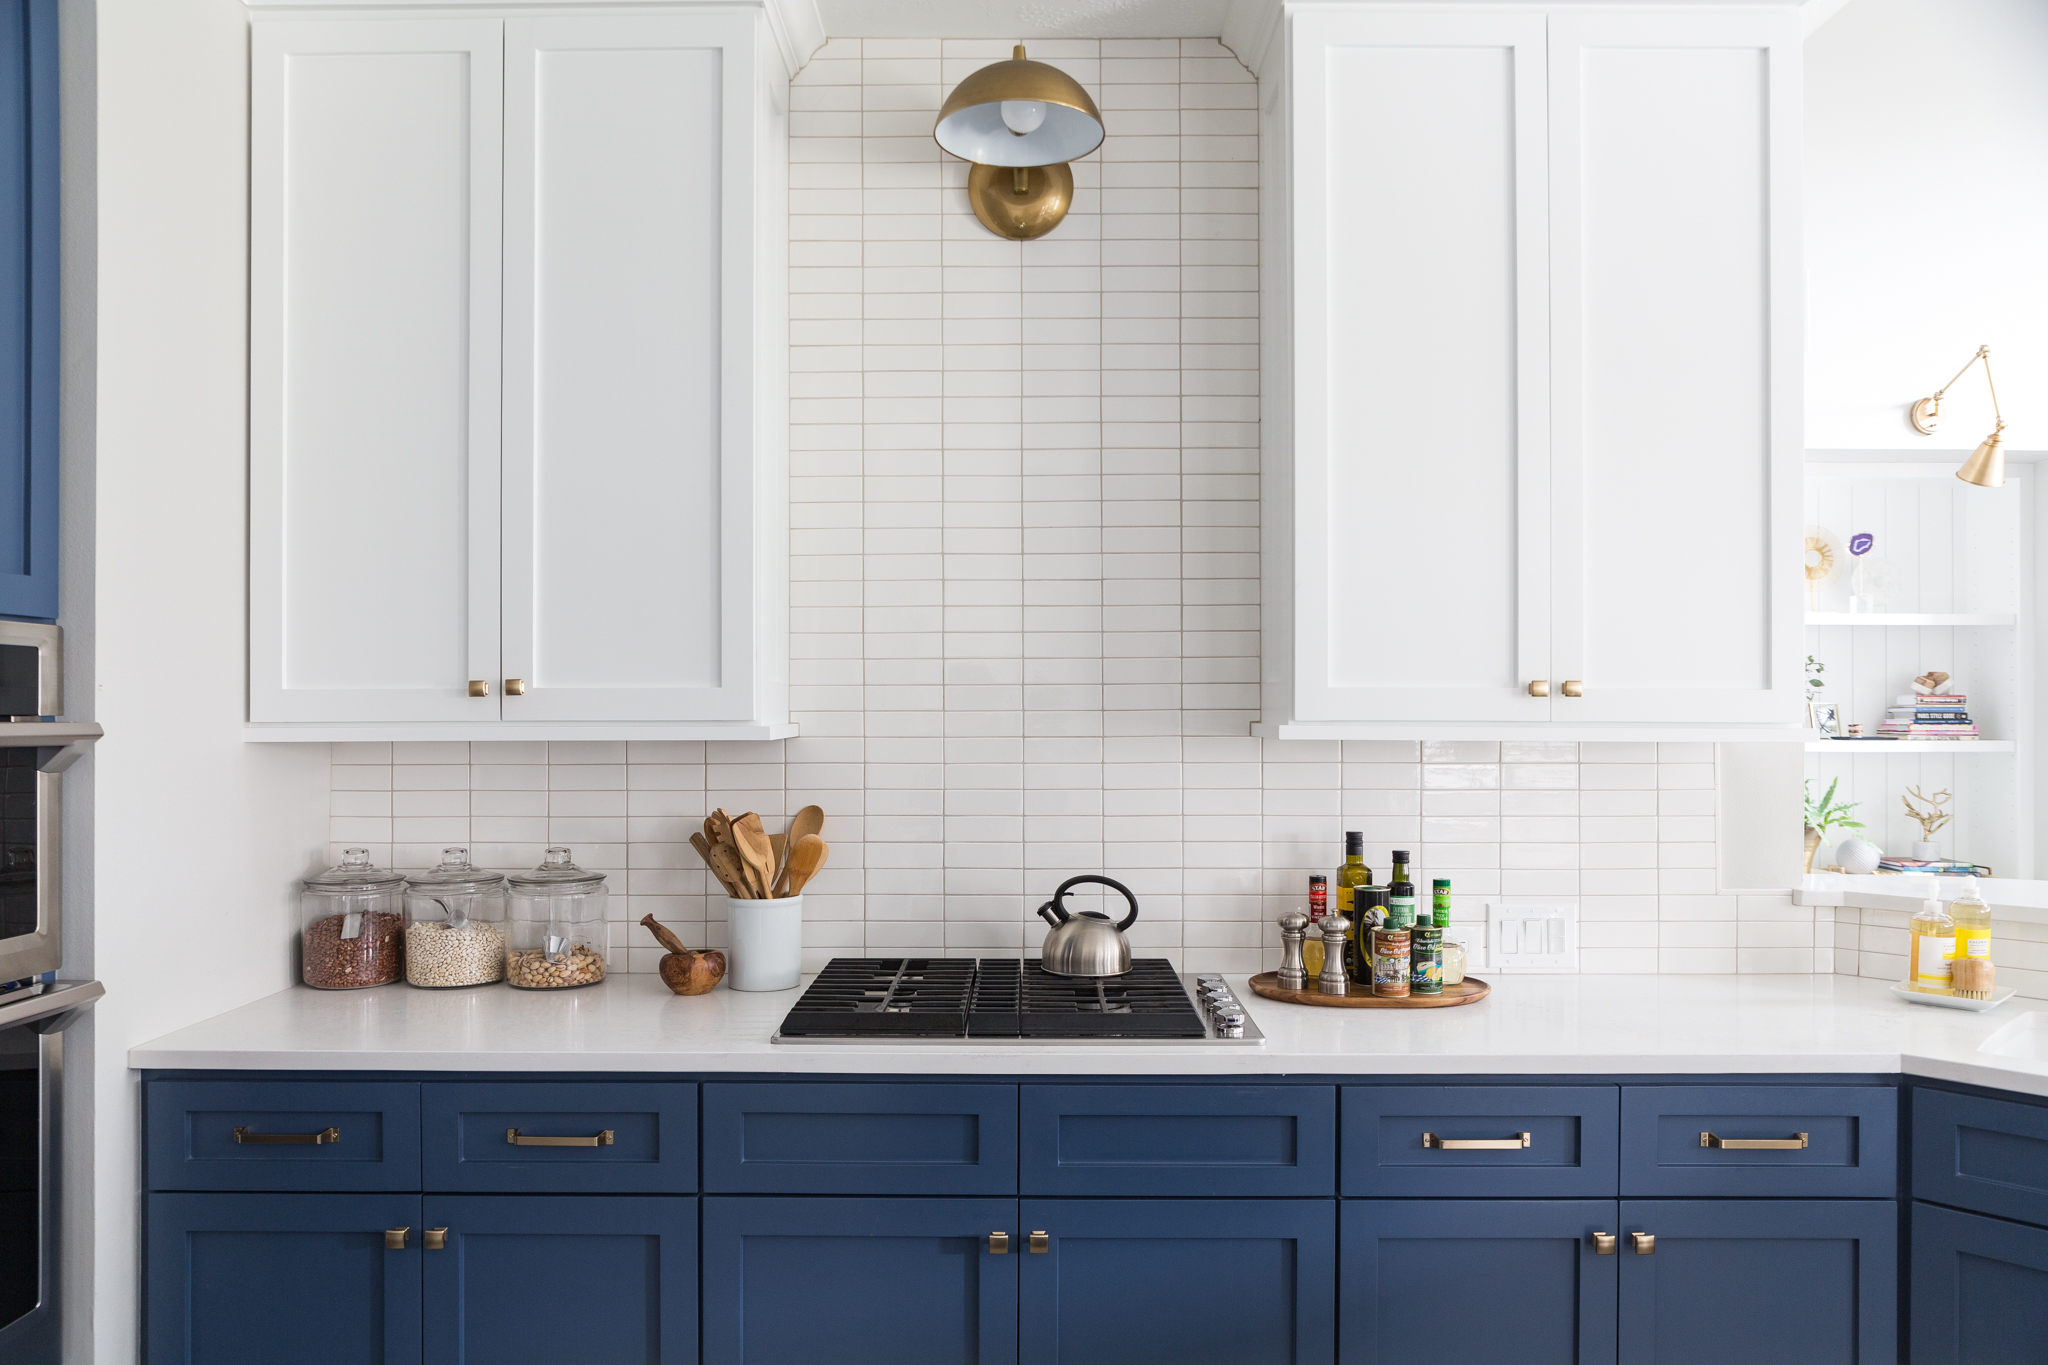 Navy and white kitchen designed by Carla Aston (2).jpg